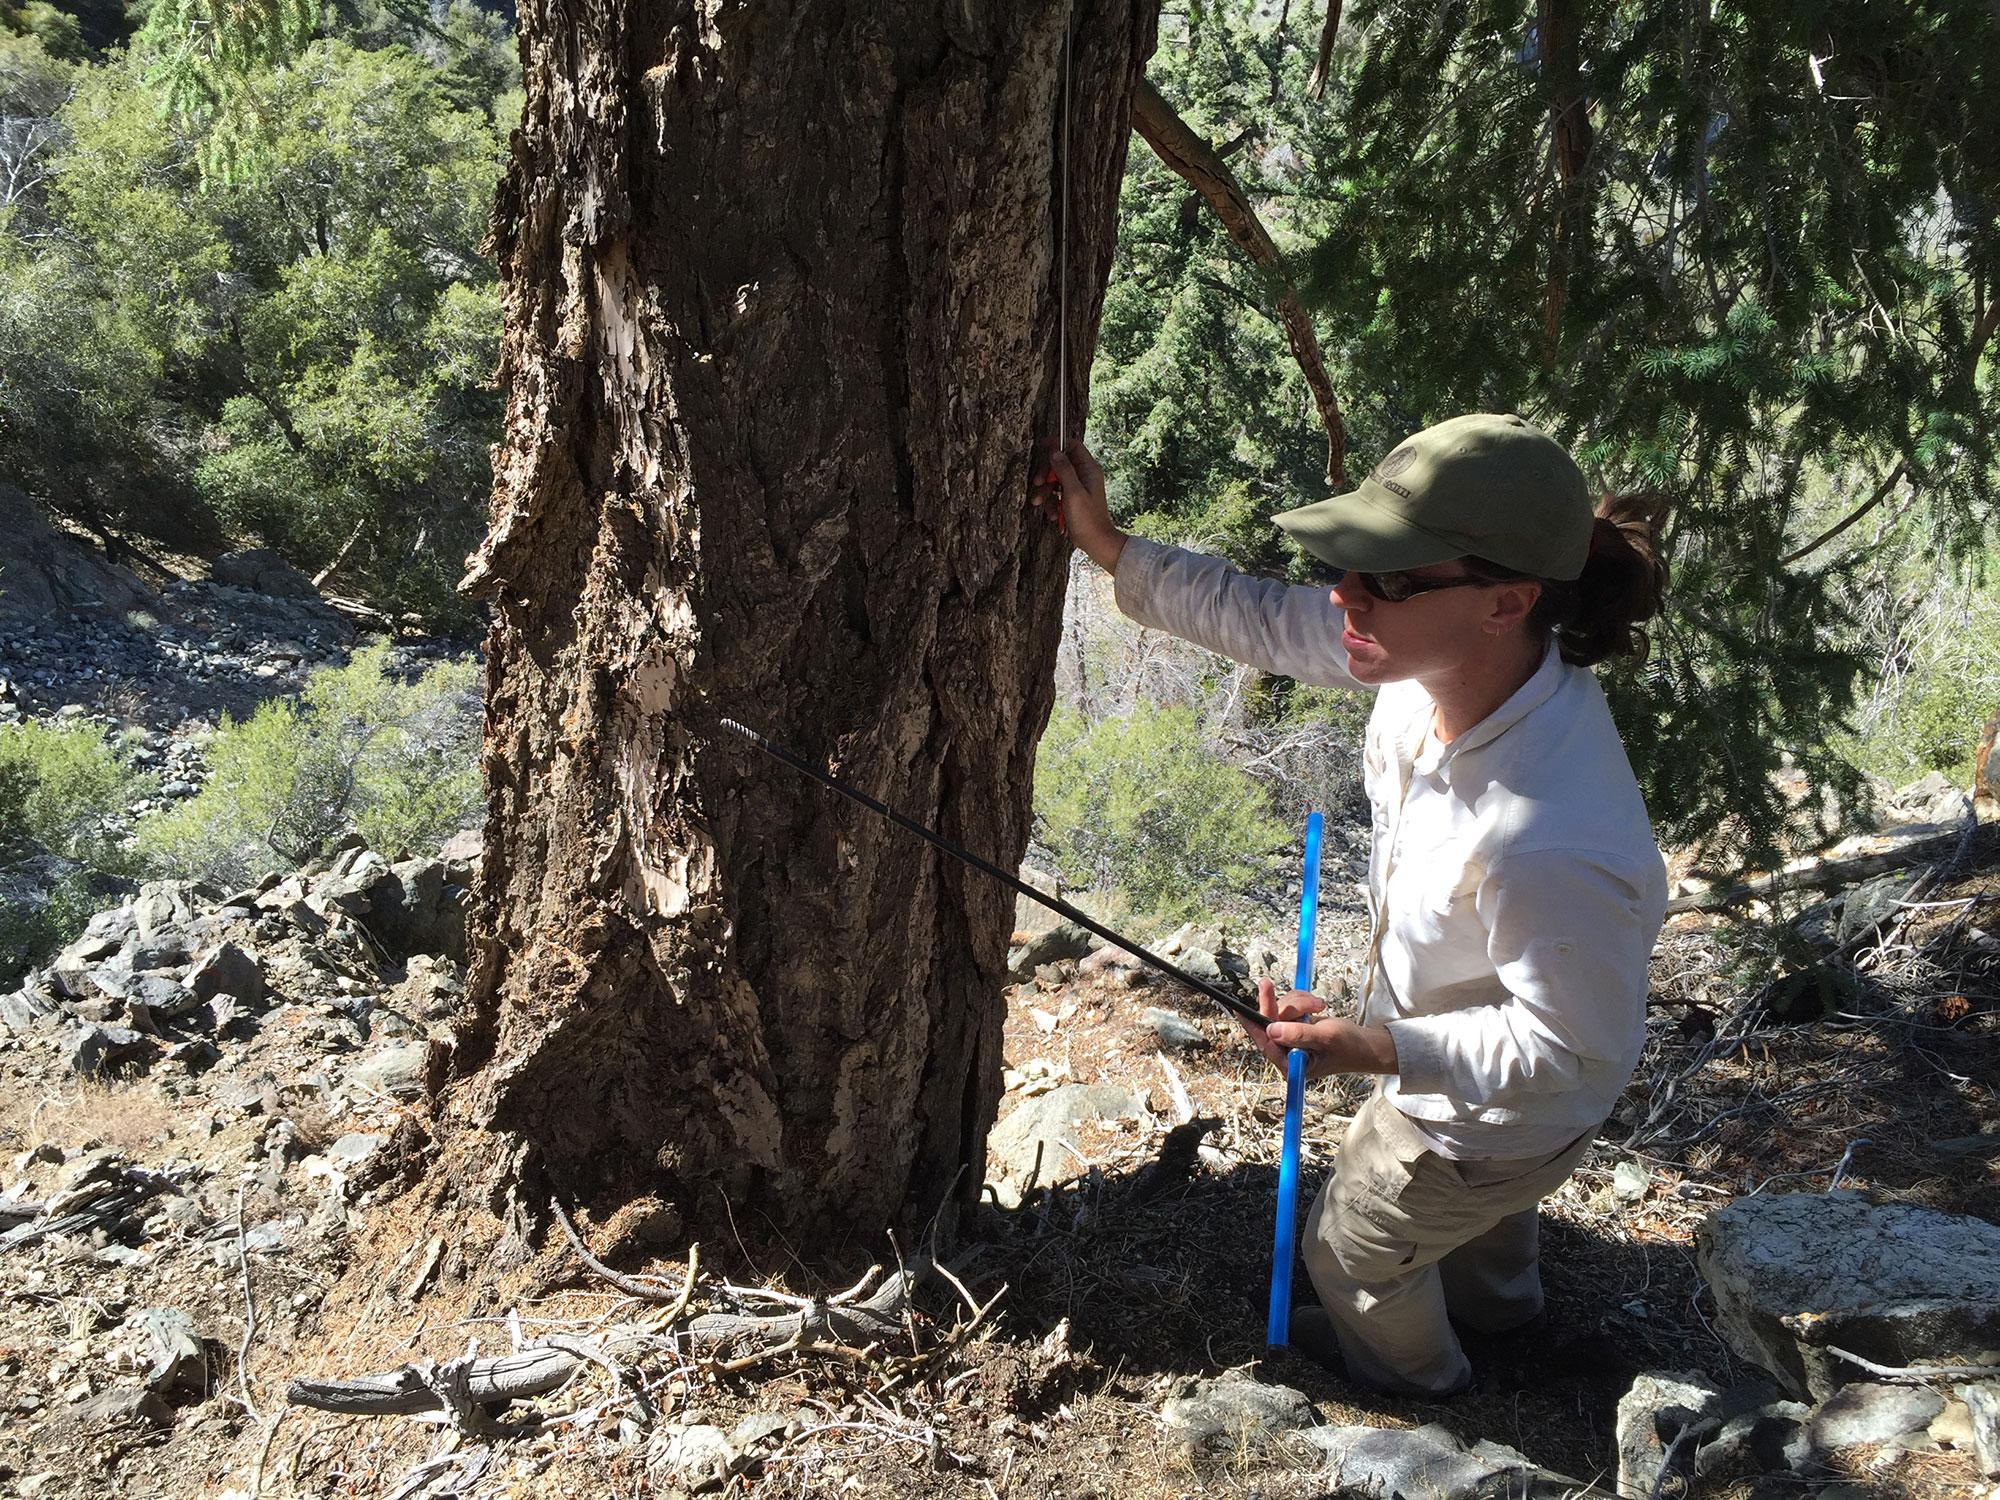 Co-author Erica Bigio takes a core sample of a live tree in the California's San Gabriel Mountains.